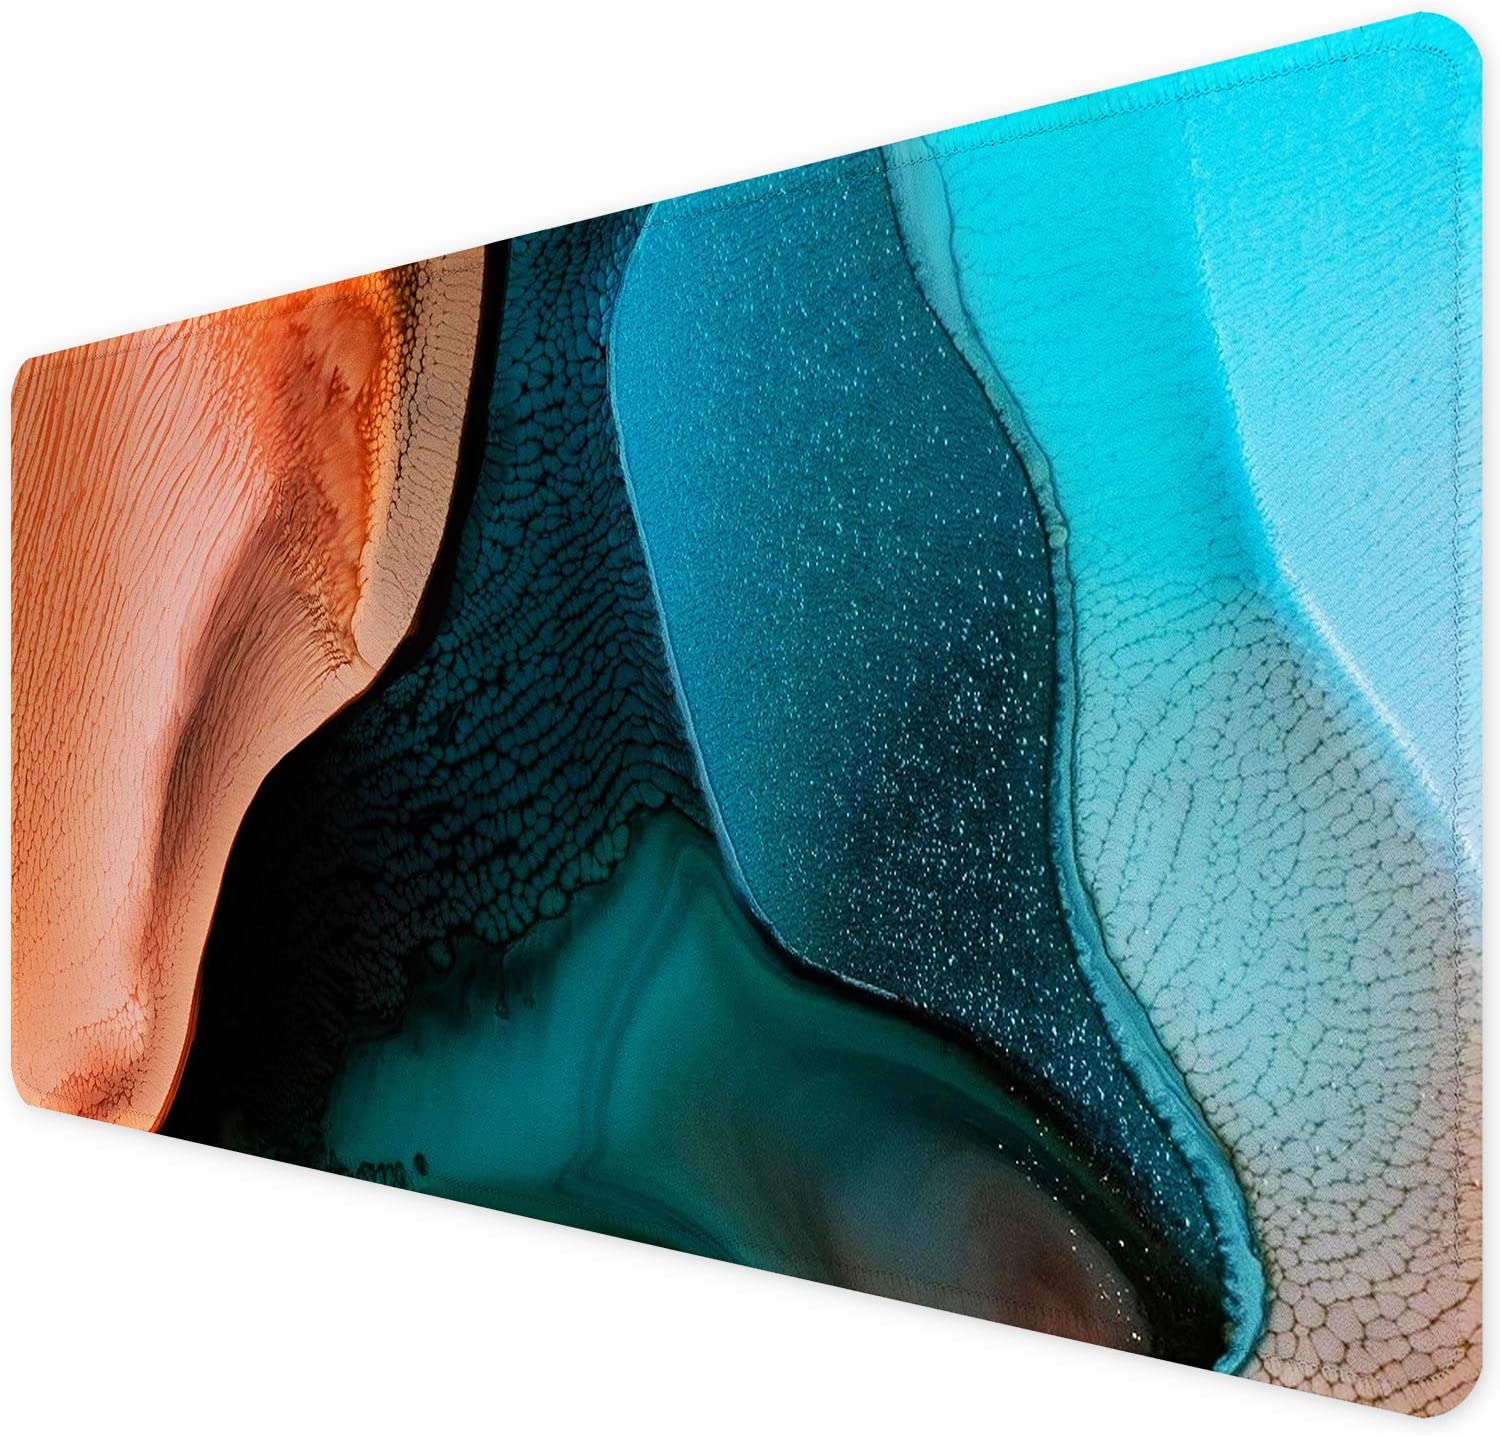 Abstract Colorful Leaves Mousepad Non-Slip Rubber Gaming Mouse Pad Mouse Pads for Computers Laptop 11.8 X 31.5 in